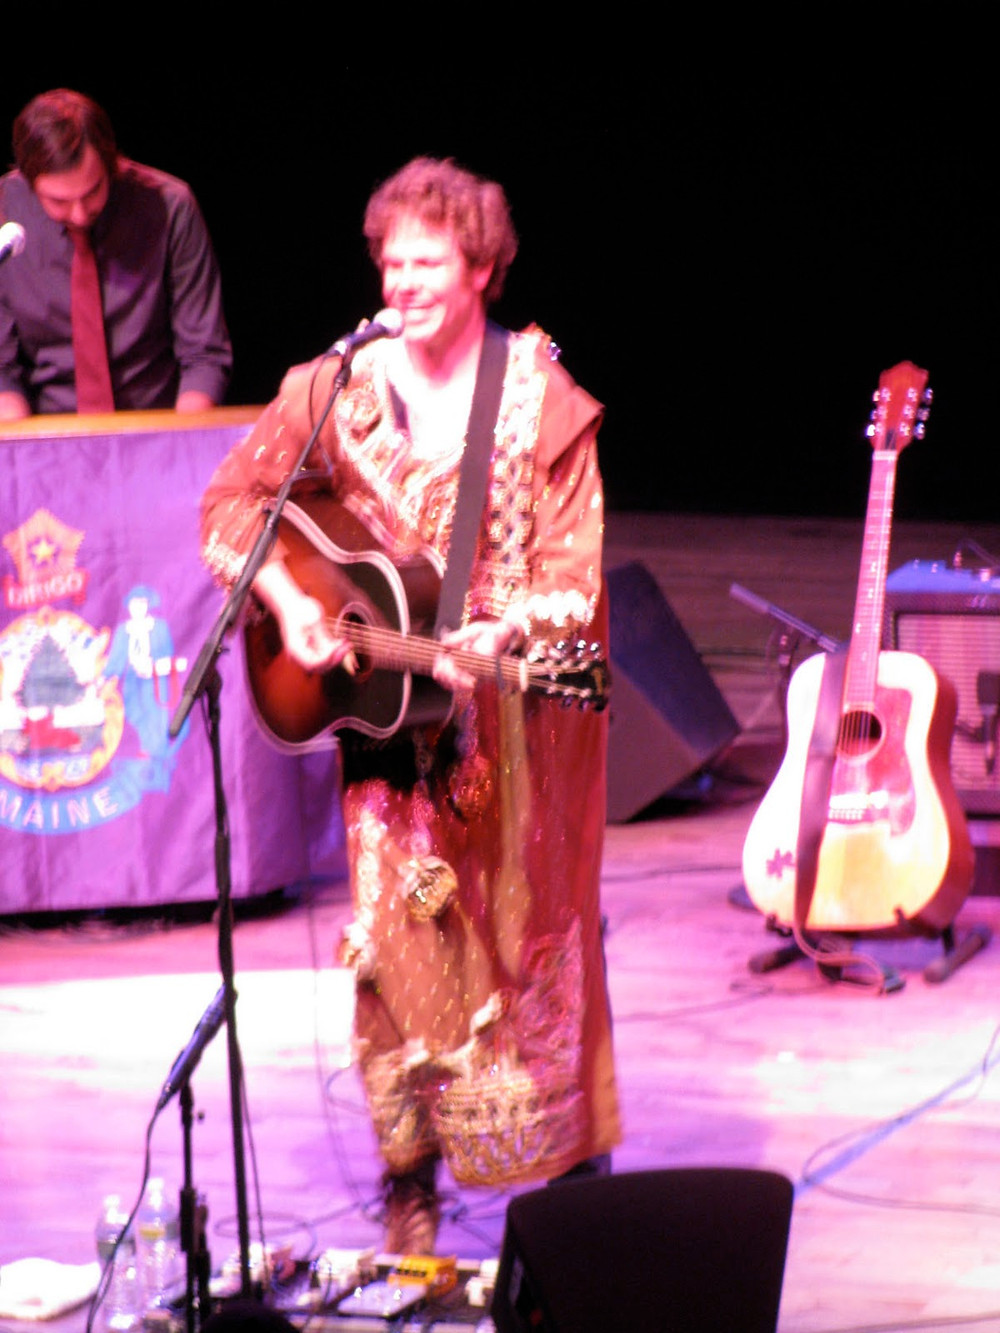 Josh Ritter dons a party dress in Portland, Maine.